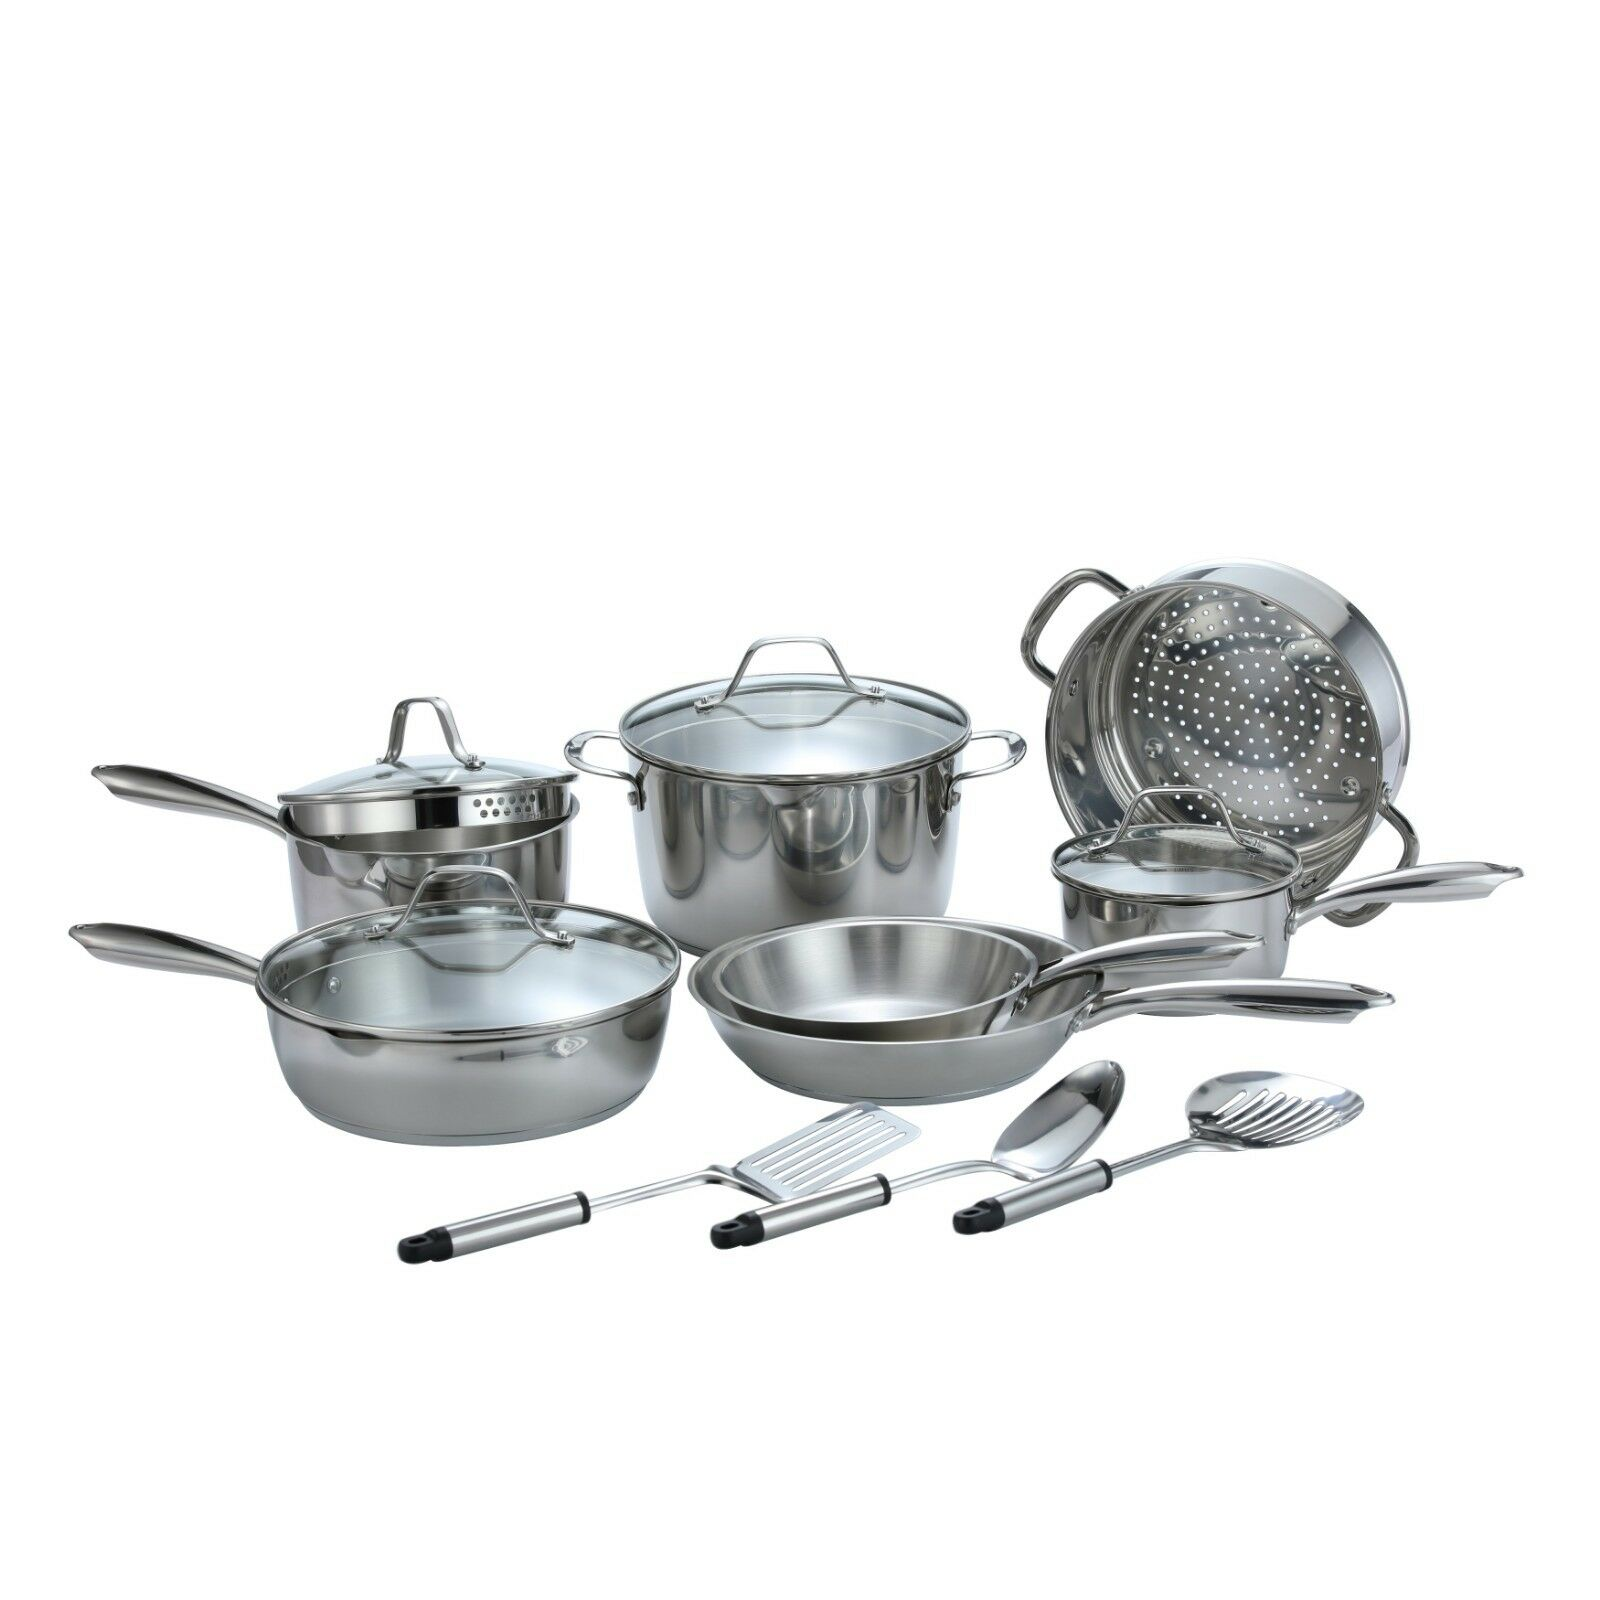 professional stainless steel 14 piece cookware kitchenware